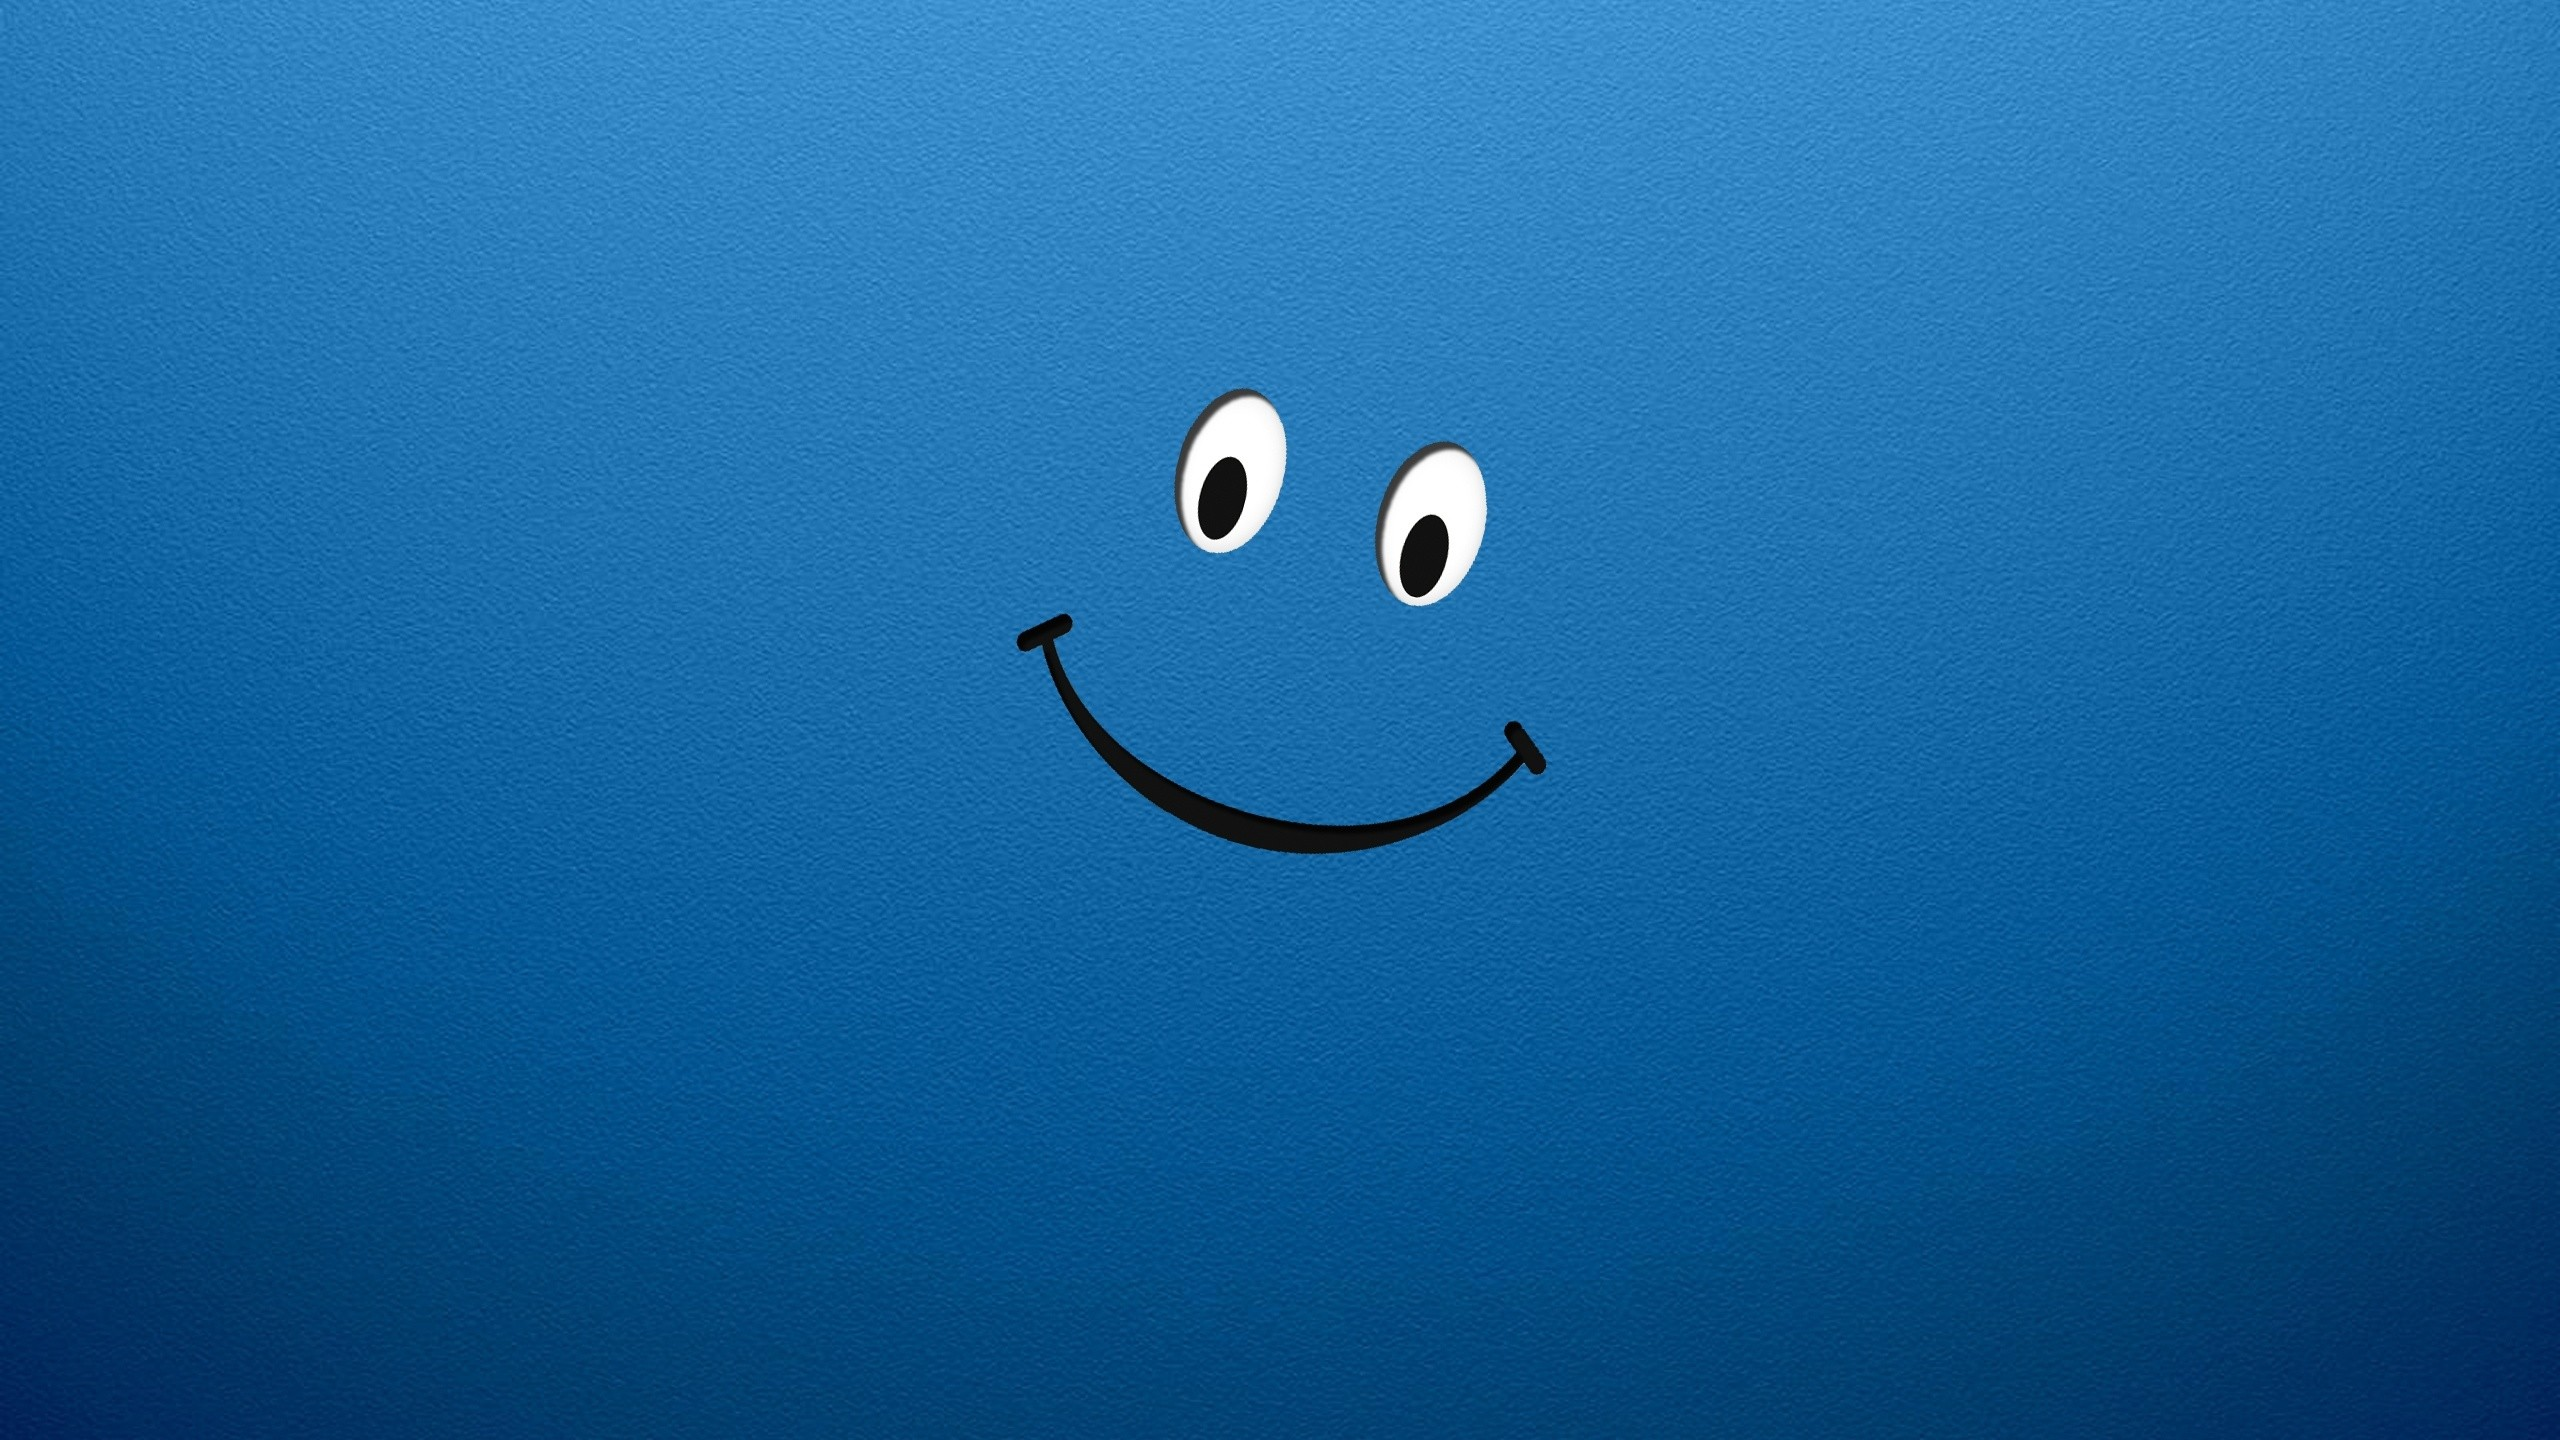 Happy Face Hd Wallpapers Smiley face wa 2560x1440